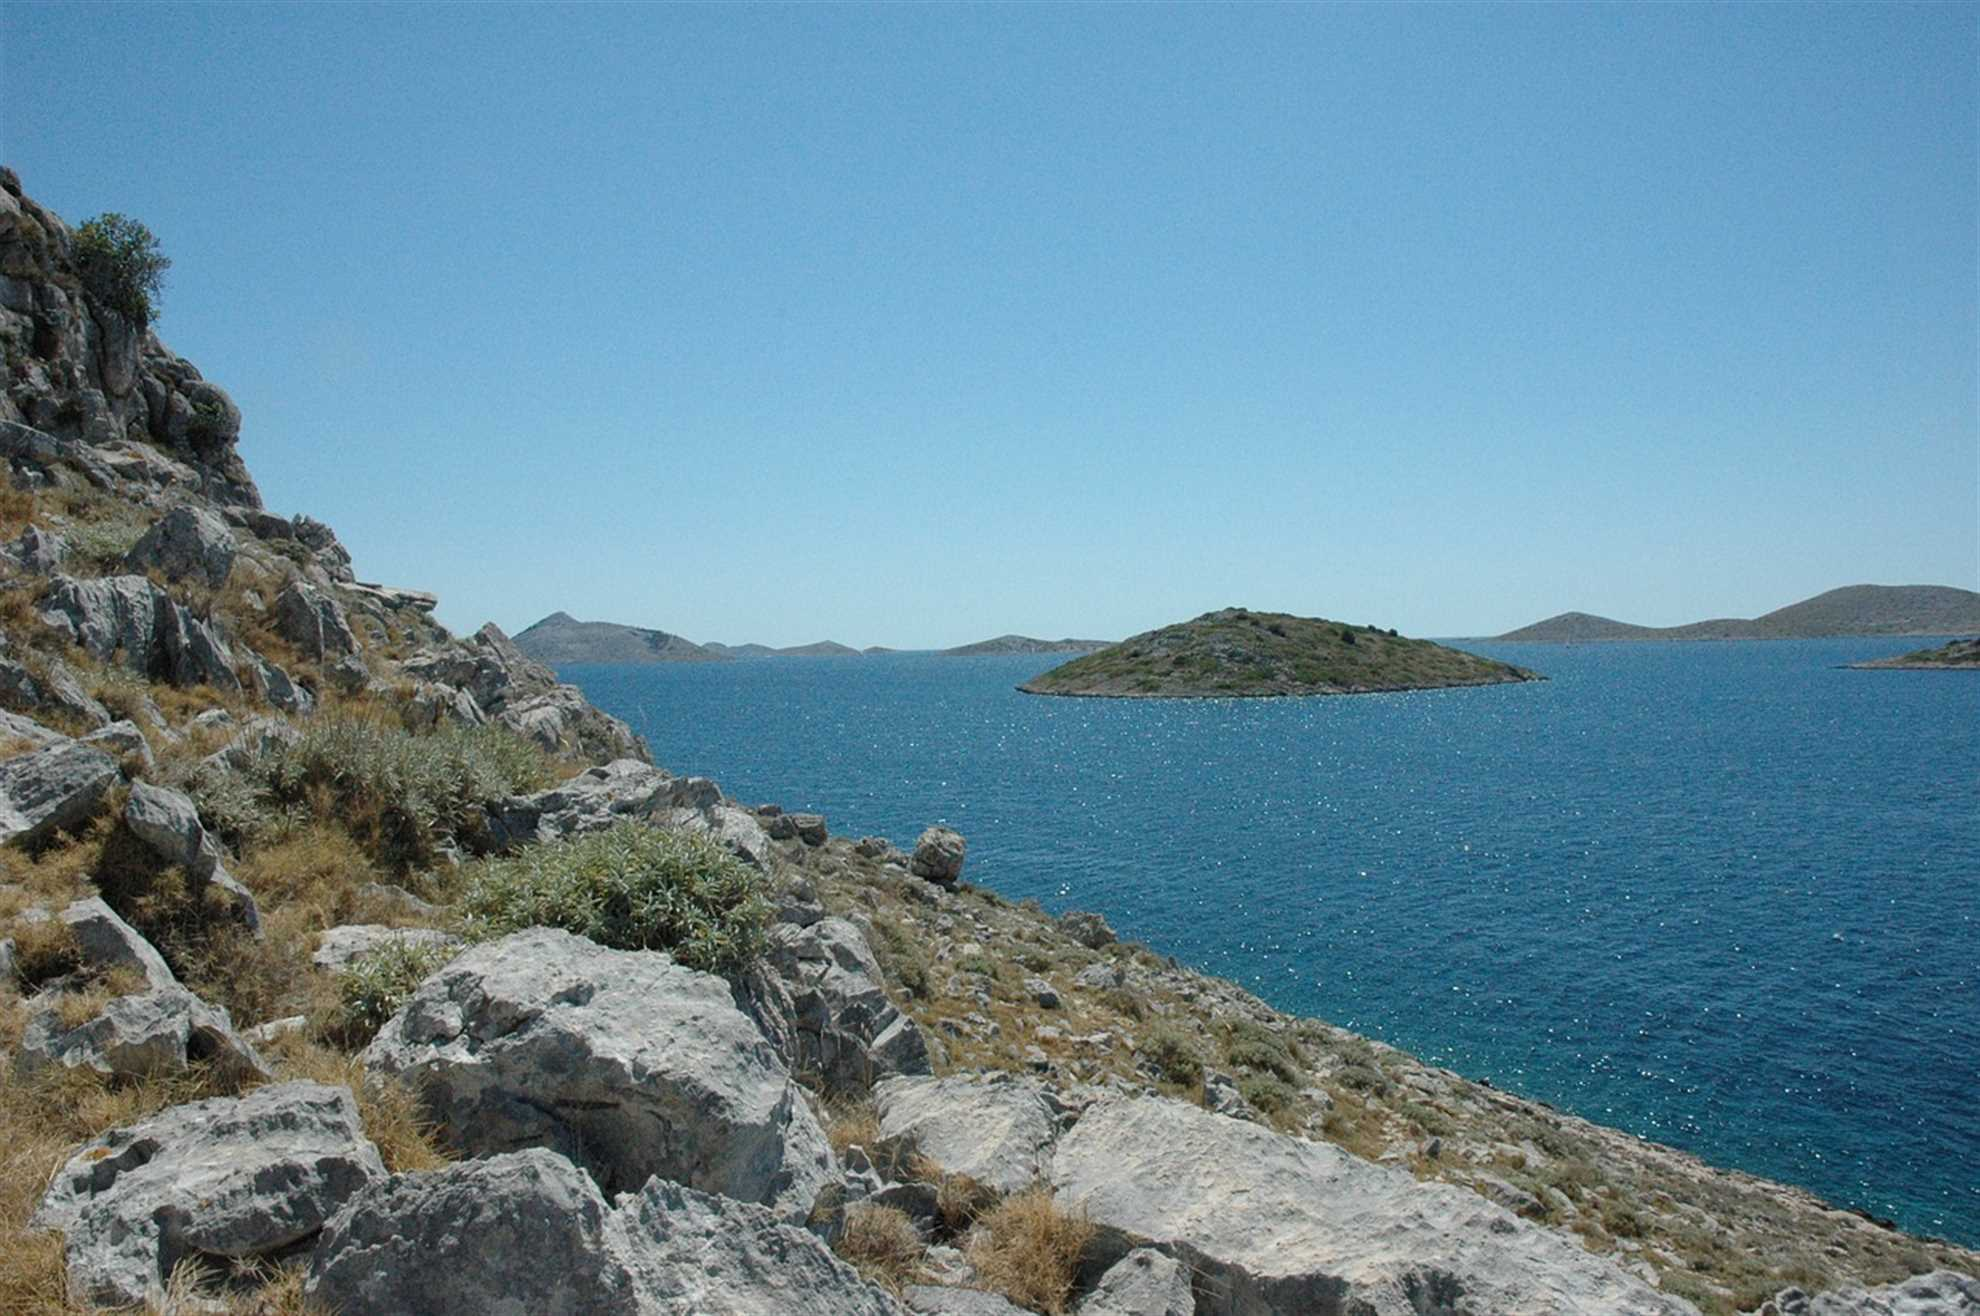 Kornati Islands National Park of Croatia, Photo Source: www.pixabay.com